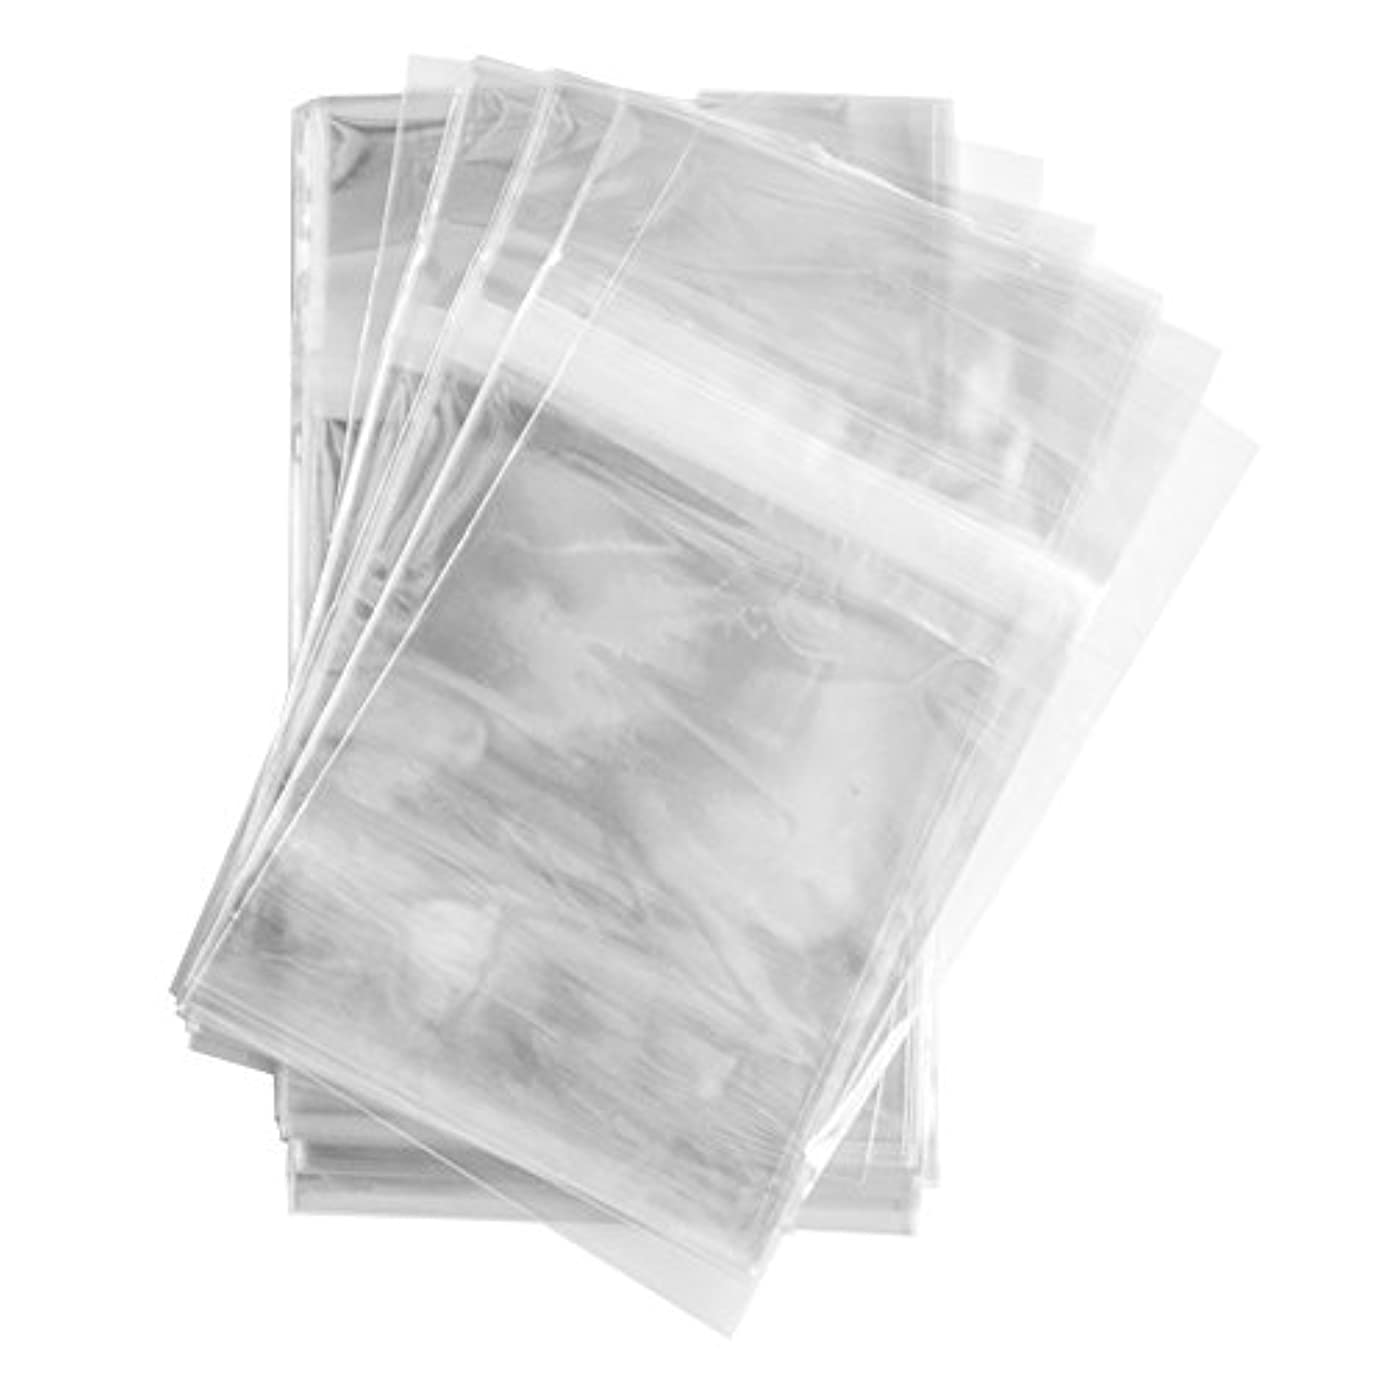 100 Pcs 5 7/16 X 7 1/4 Clear (A7+) (P) Card Resealable Cello / Cellophane Bags - Tape Strip on Body (100)